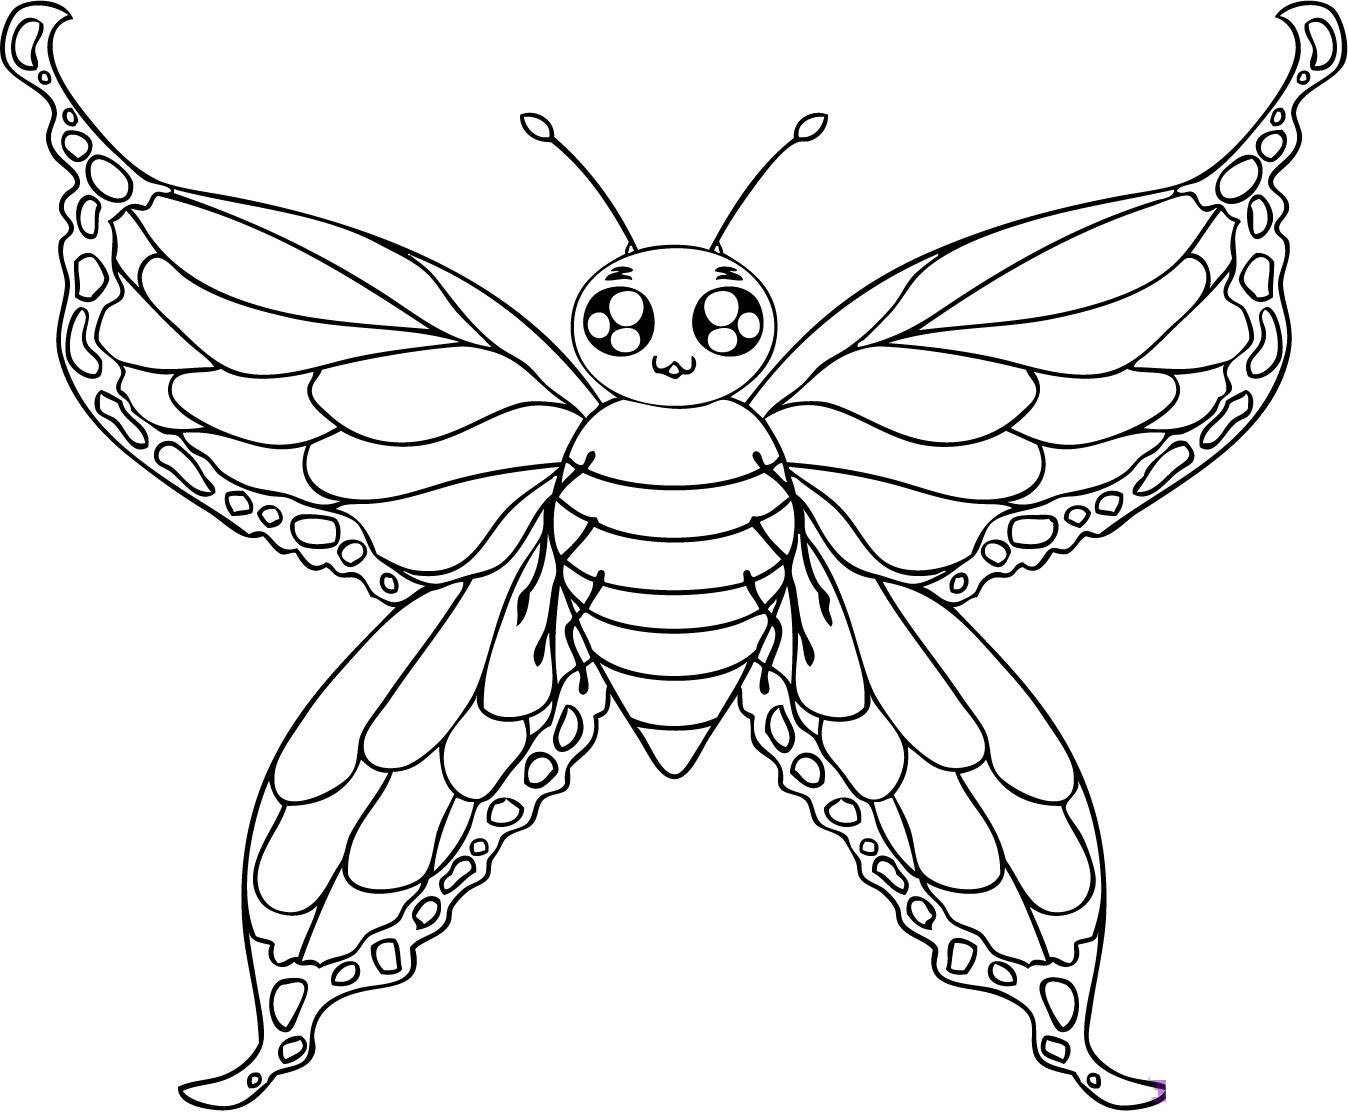 butterfly coloring pages for kids to print - Kids Colouring Pages To Print